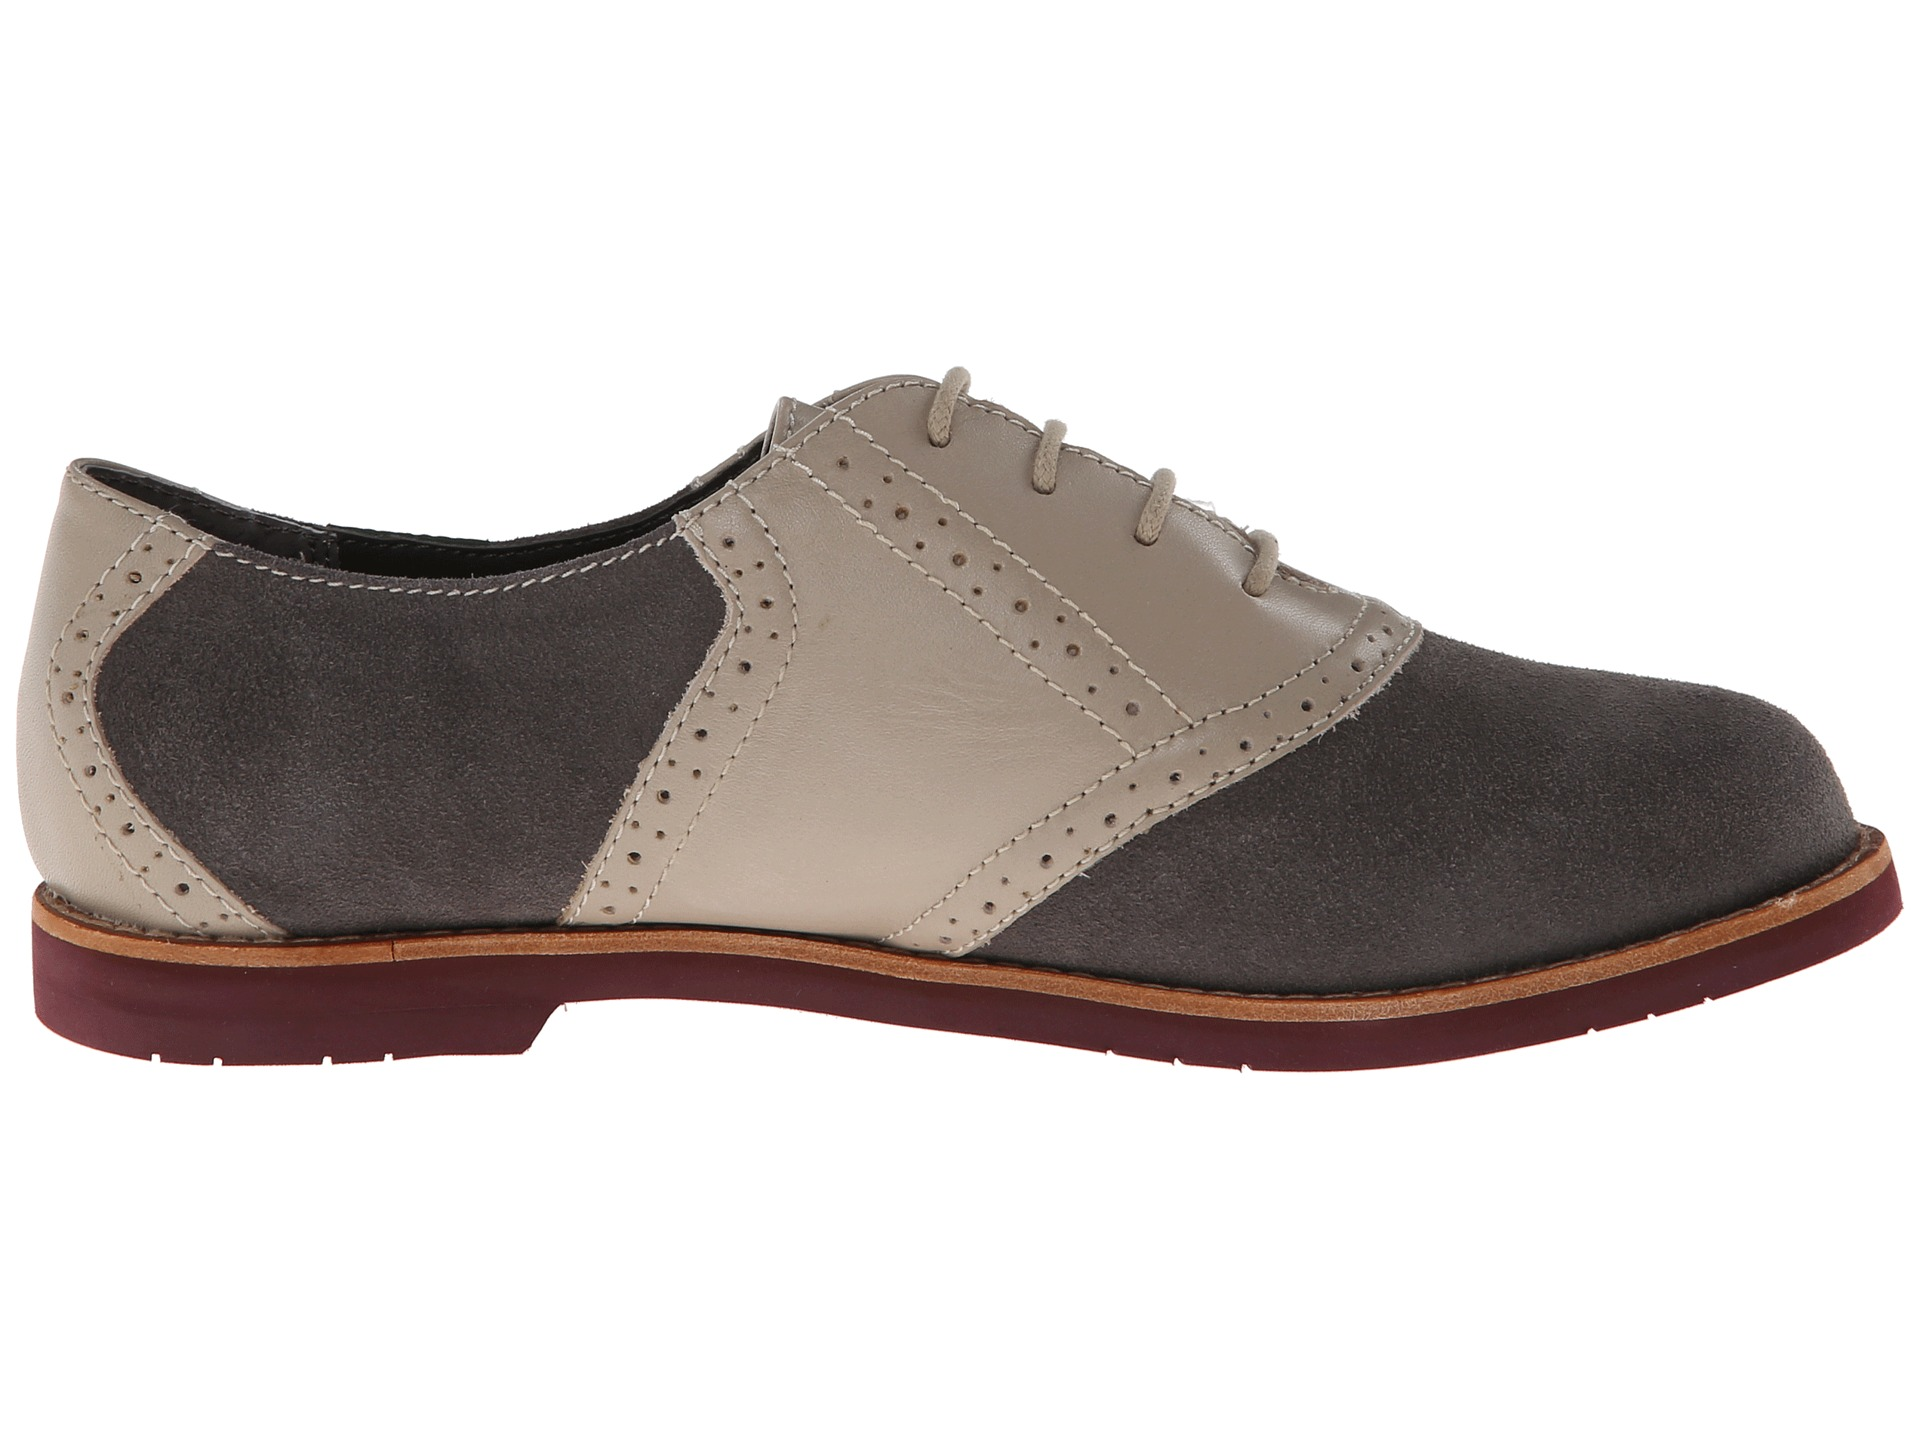 Displaying Images For - Bass Saddle Shoes Women